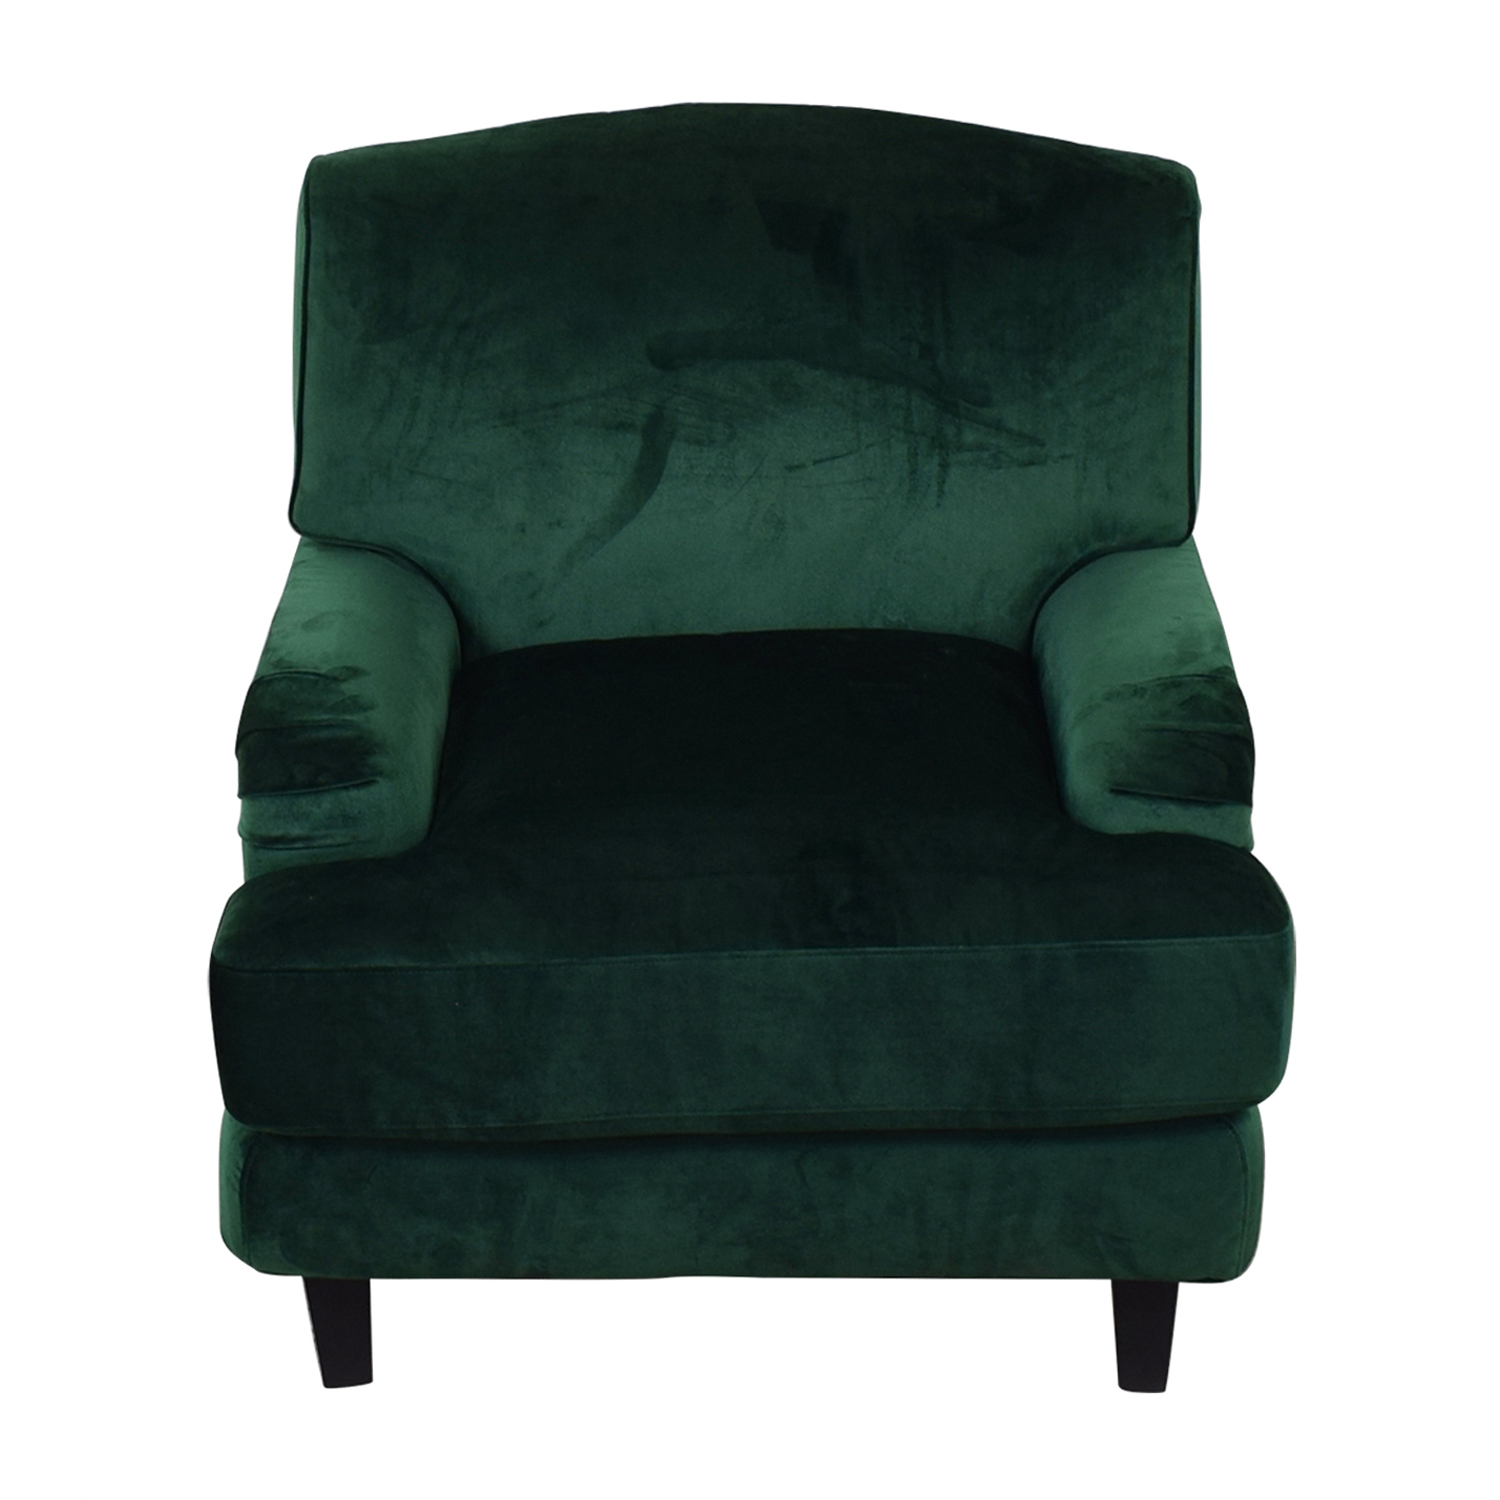 Rose Emerald Green Chair Accent Chairs